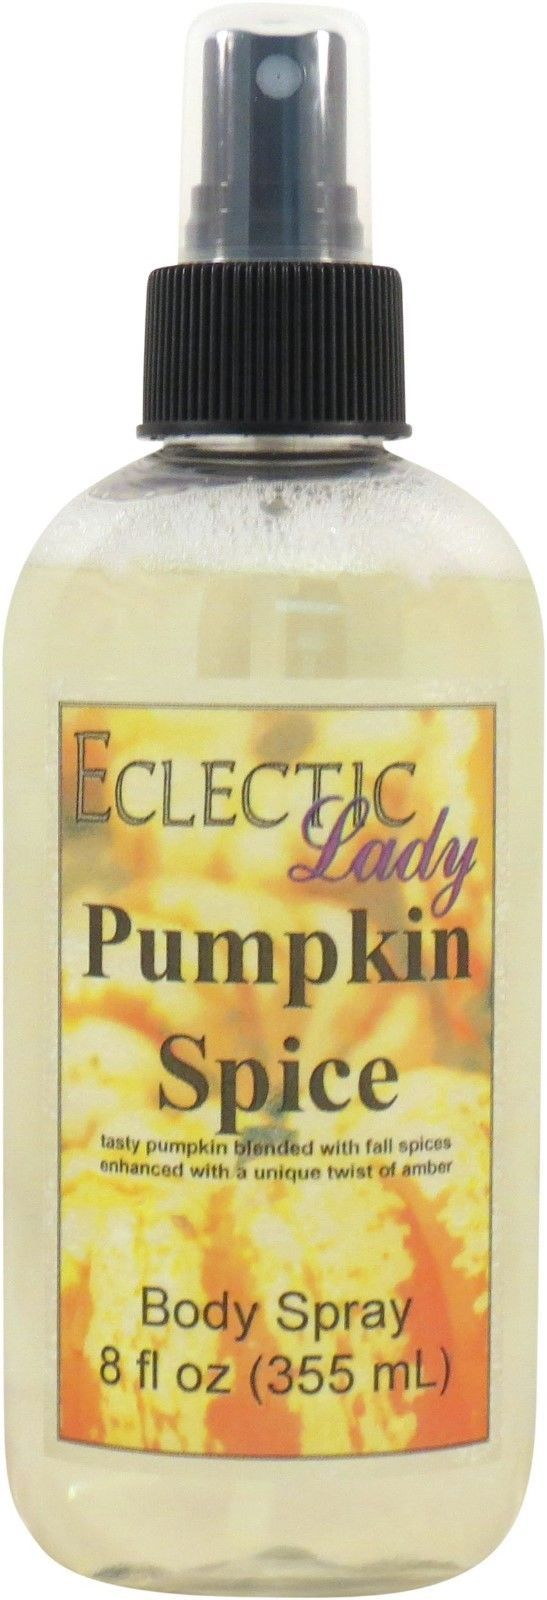 Pumpkin Spice Body Spray